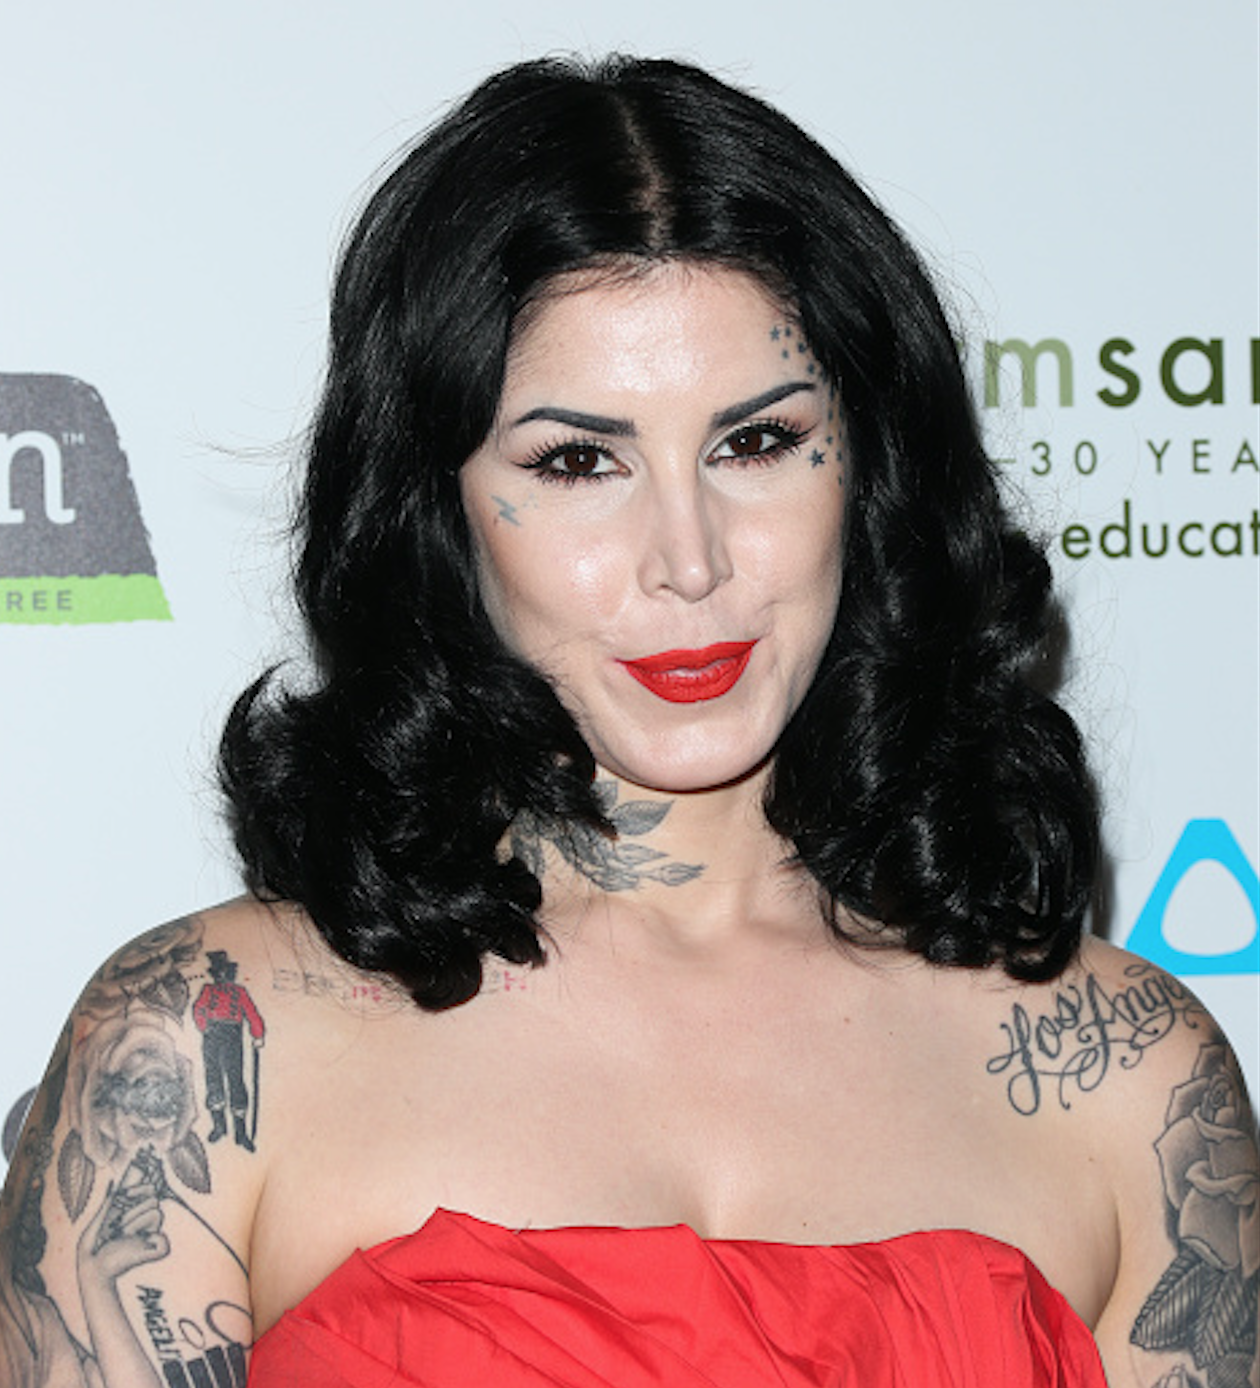 Kat Von D wore the most amazing latex catsuit to announce the relaunch of her Saint and Sinner perfumes